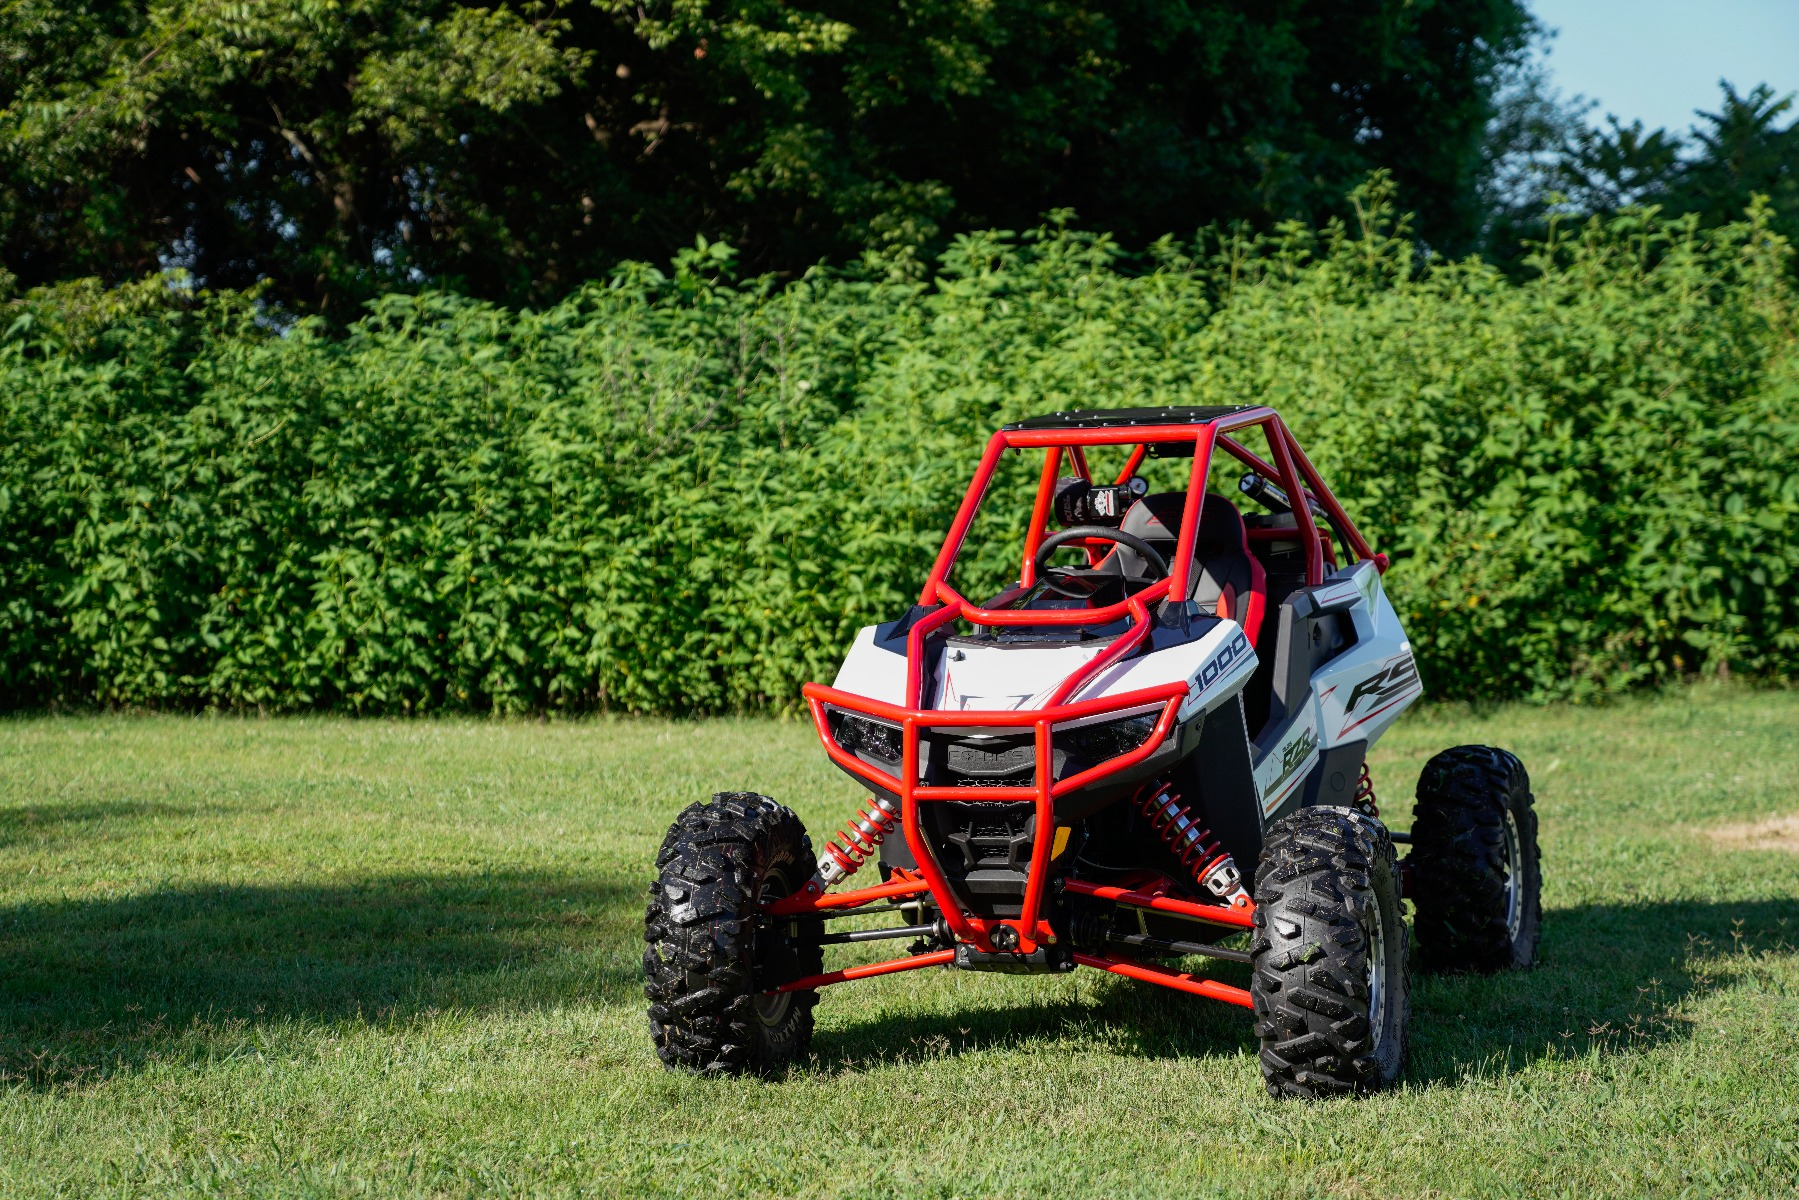 Polaris RZR RS1 Roll Cage in grass Image 4